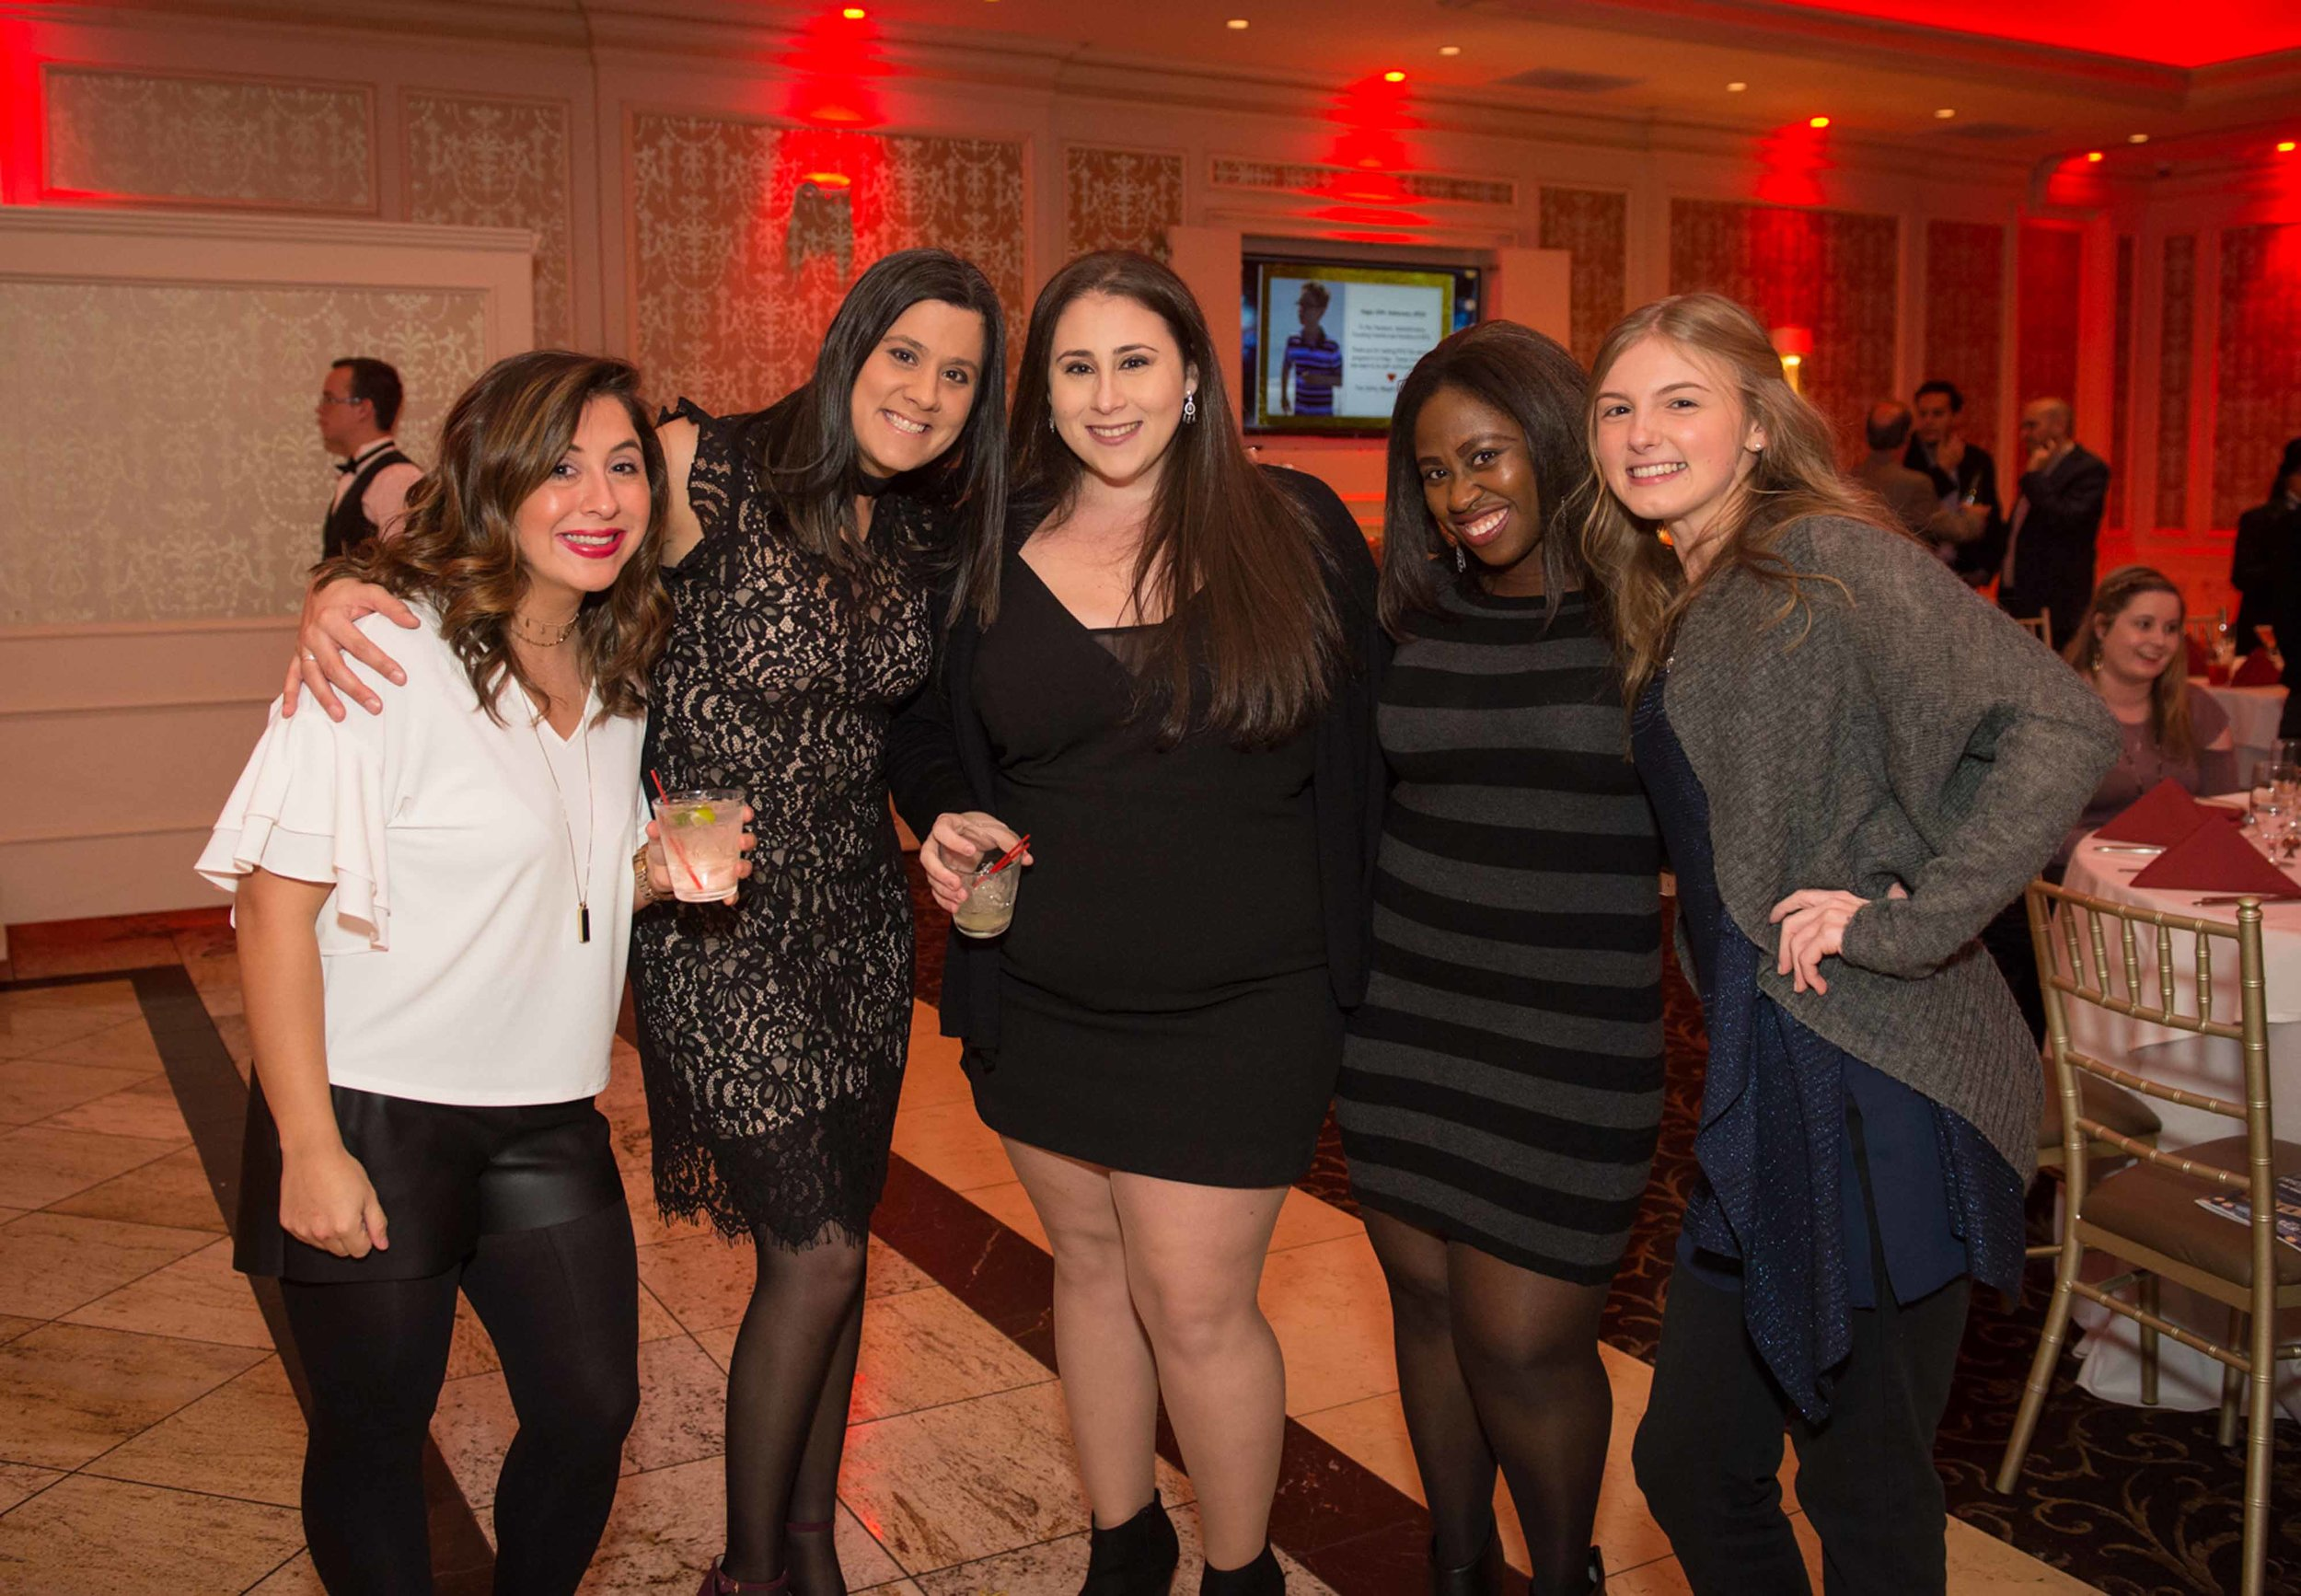 2017-11-10 The EPIC School - Party with a Purpose - Biagios on the Terrace - Paramus NJ-123.jpg